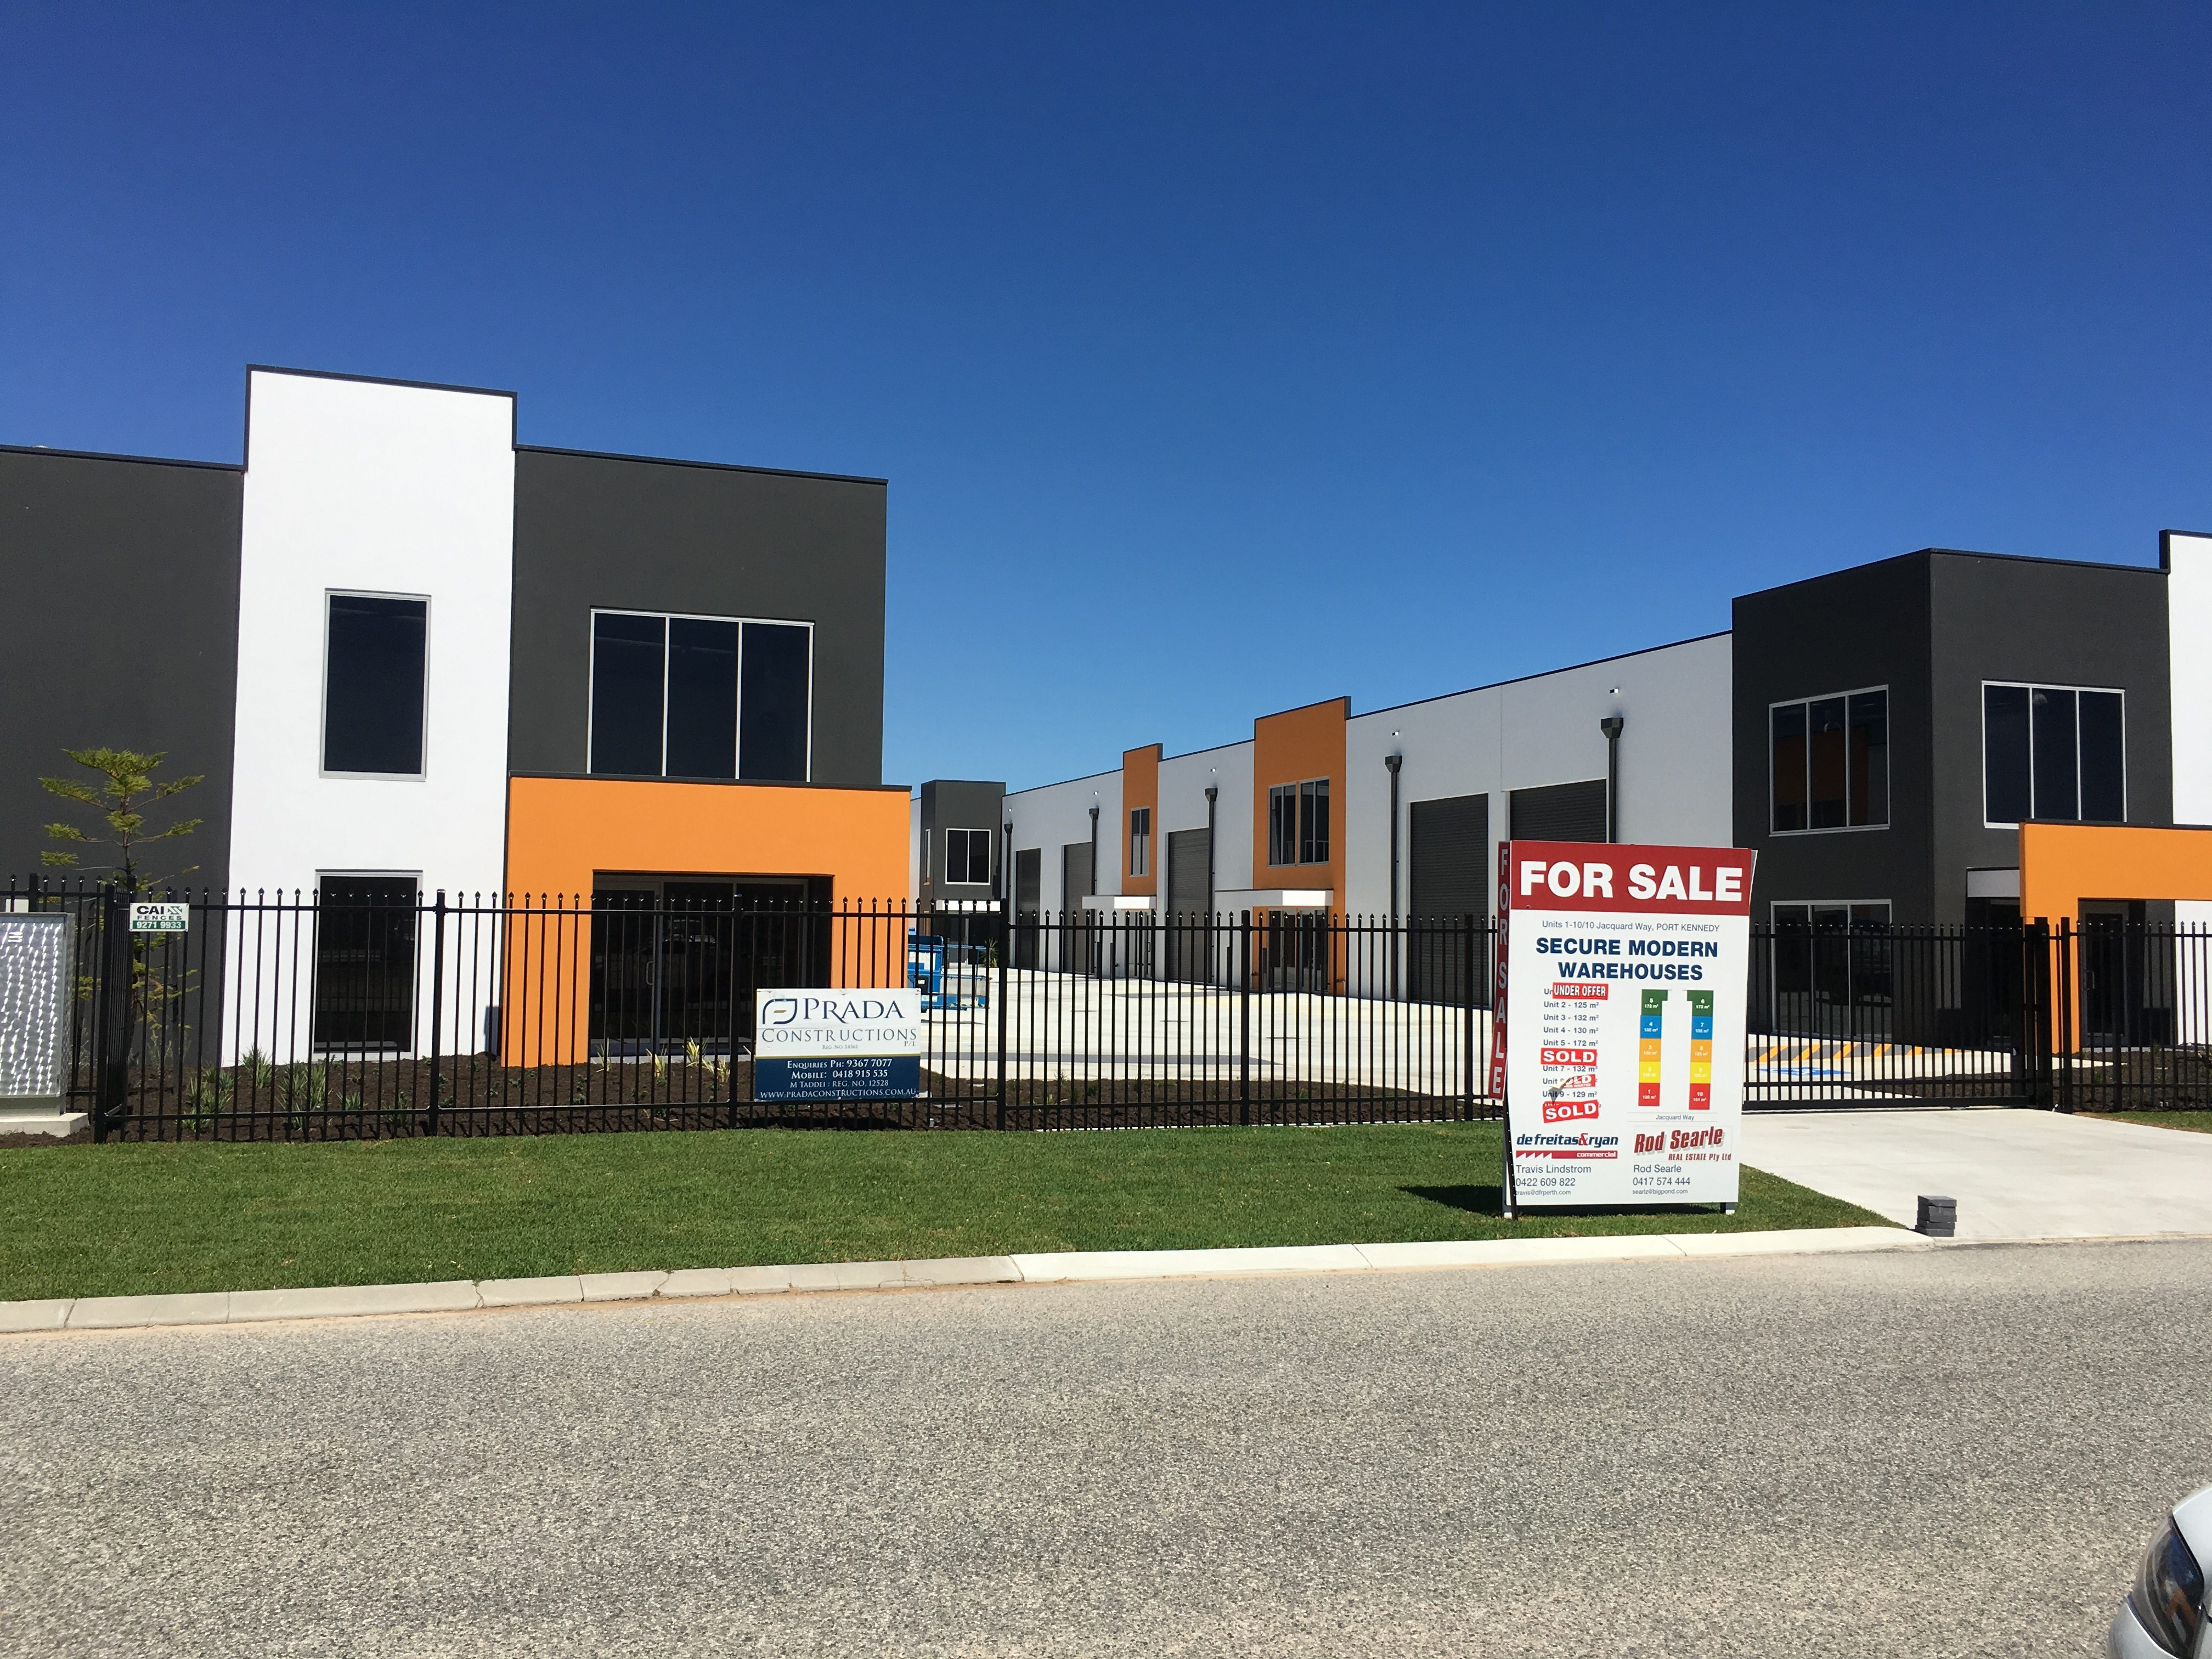 Exterior shot of fenced, modern warehouse units, finished in dark grey, orange and white